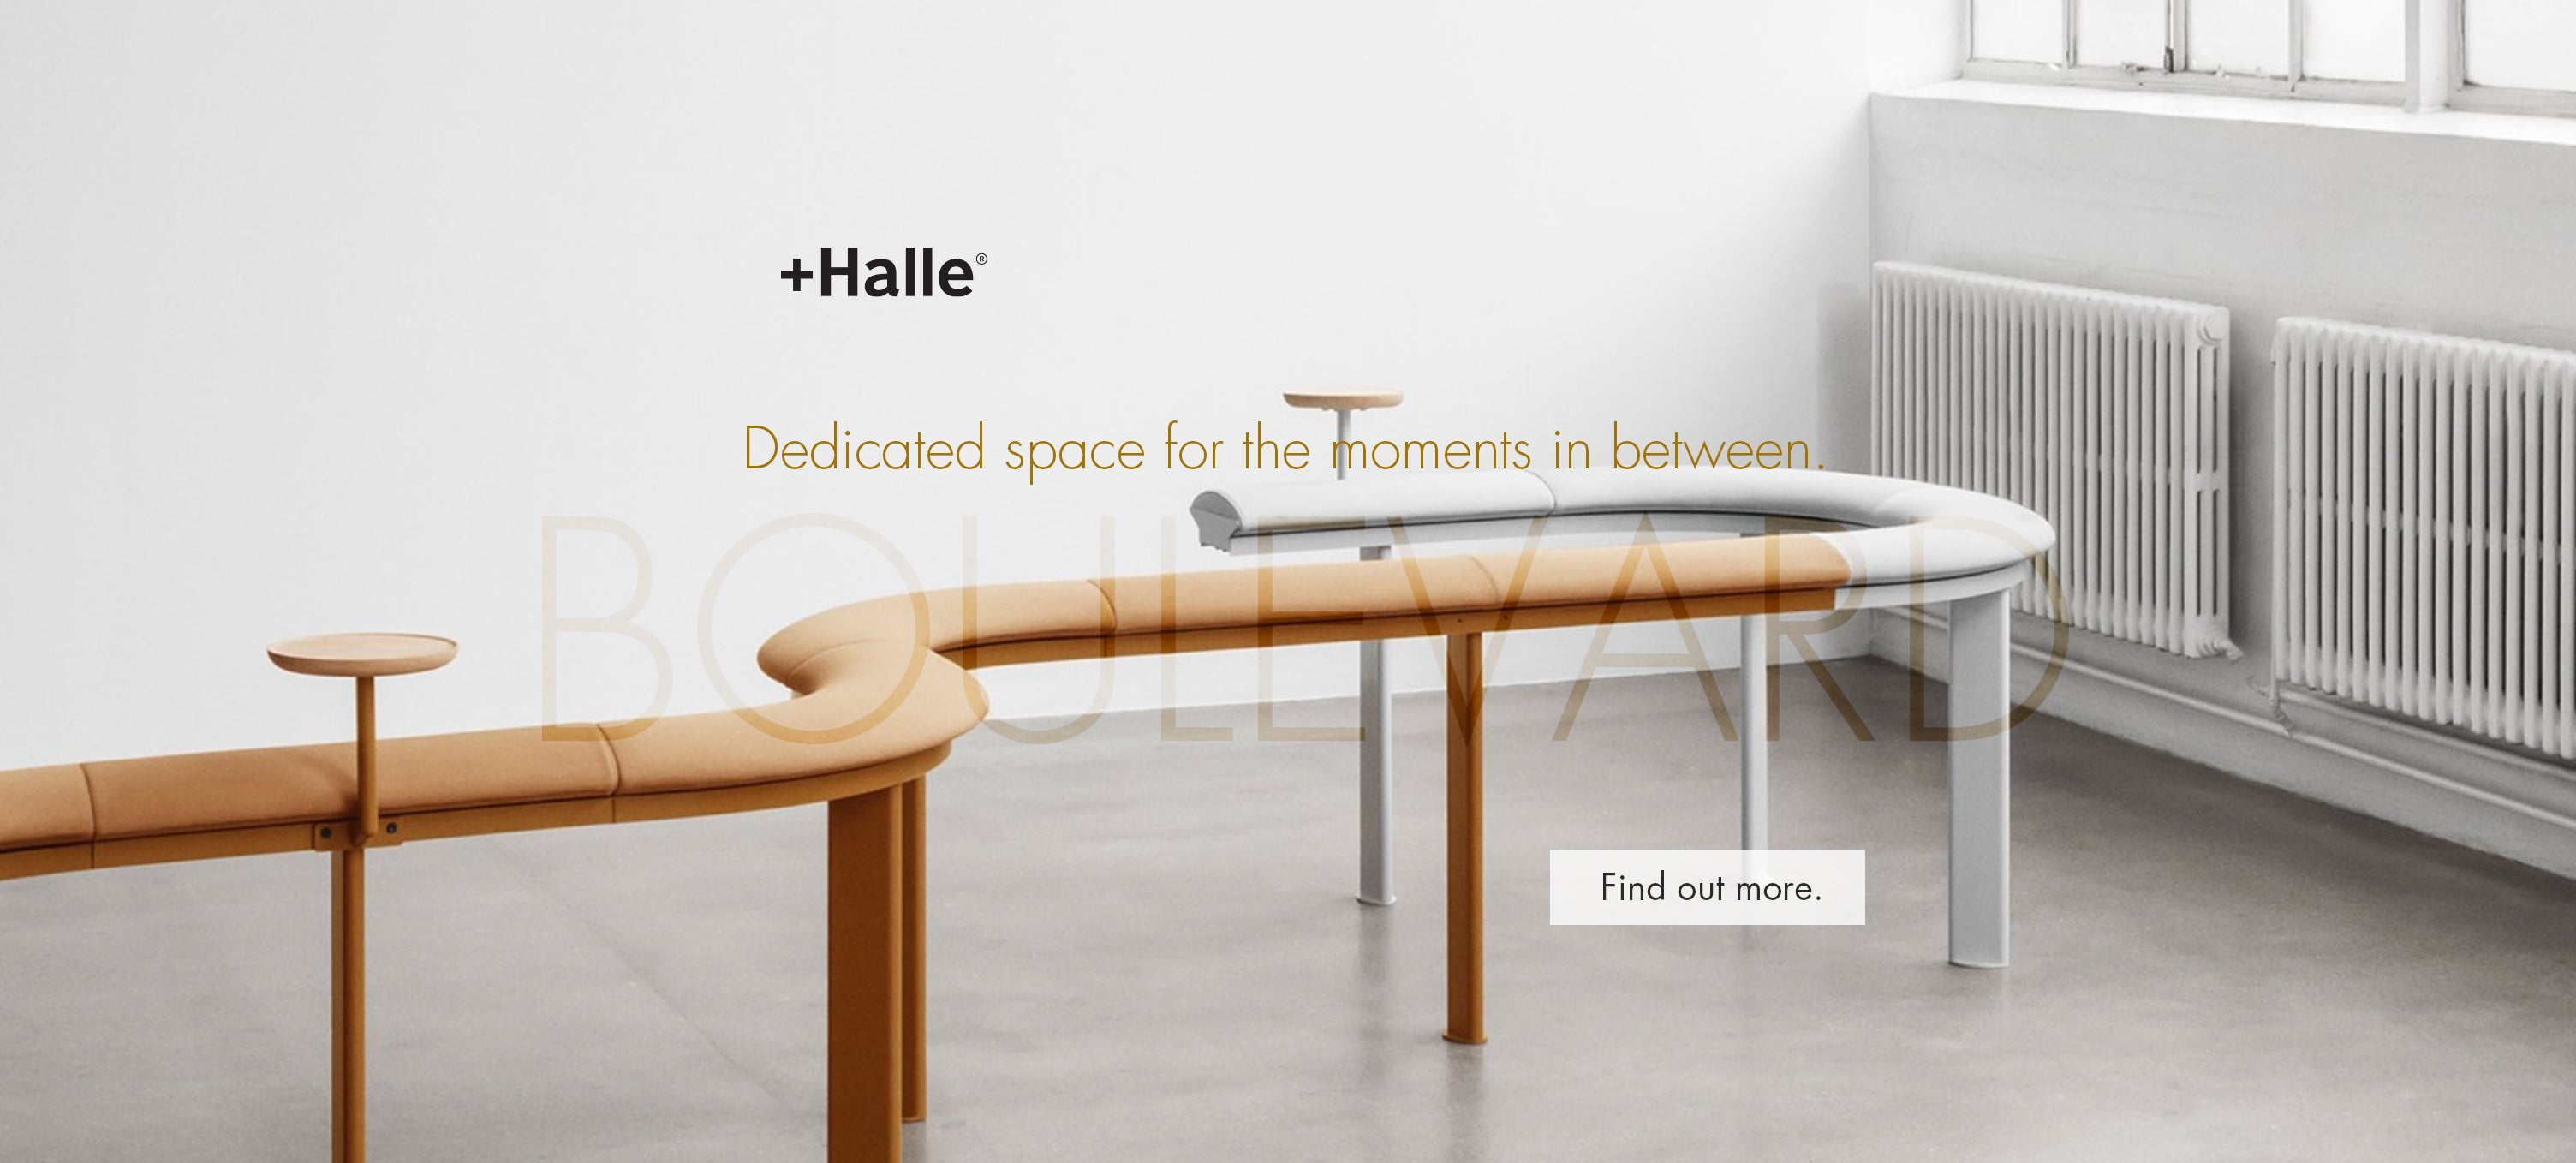 Plus Halle Boulevard reception seating